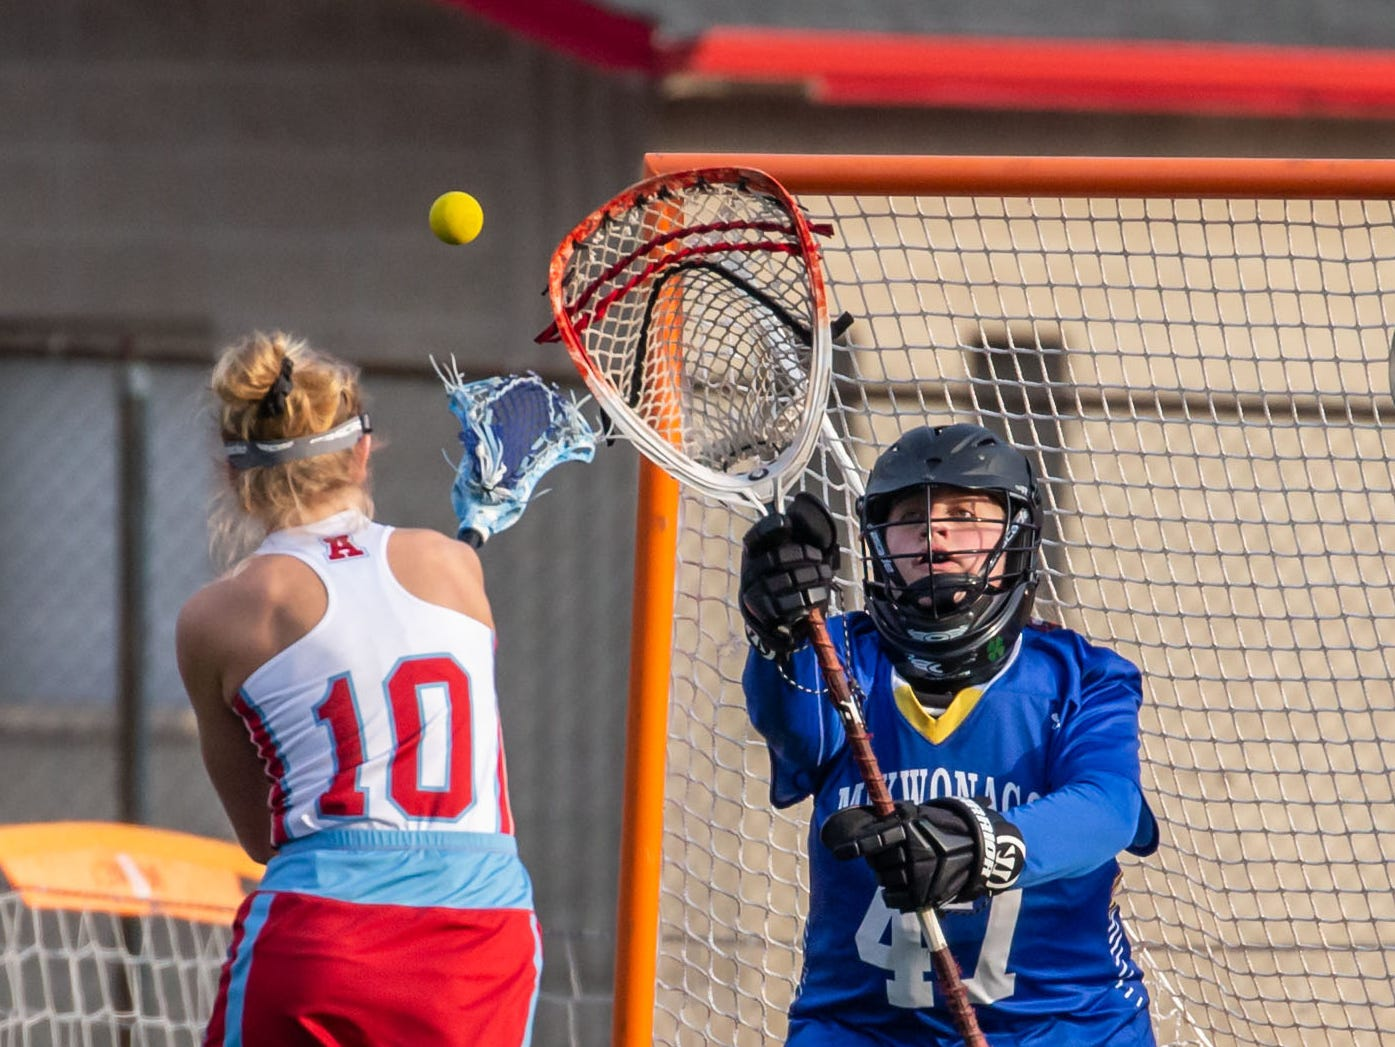 Arrowhead's Steph Curry (10) scores on Mukwonago goalie Izabella Kaczik (47) during the game at Arrowhead on Tuesday, April 16, 2019.